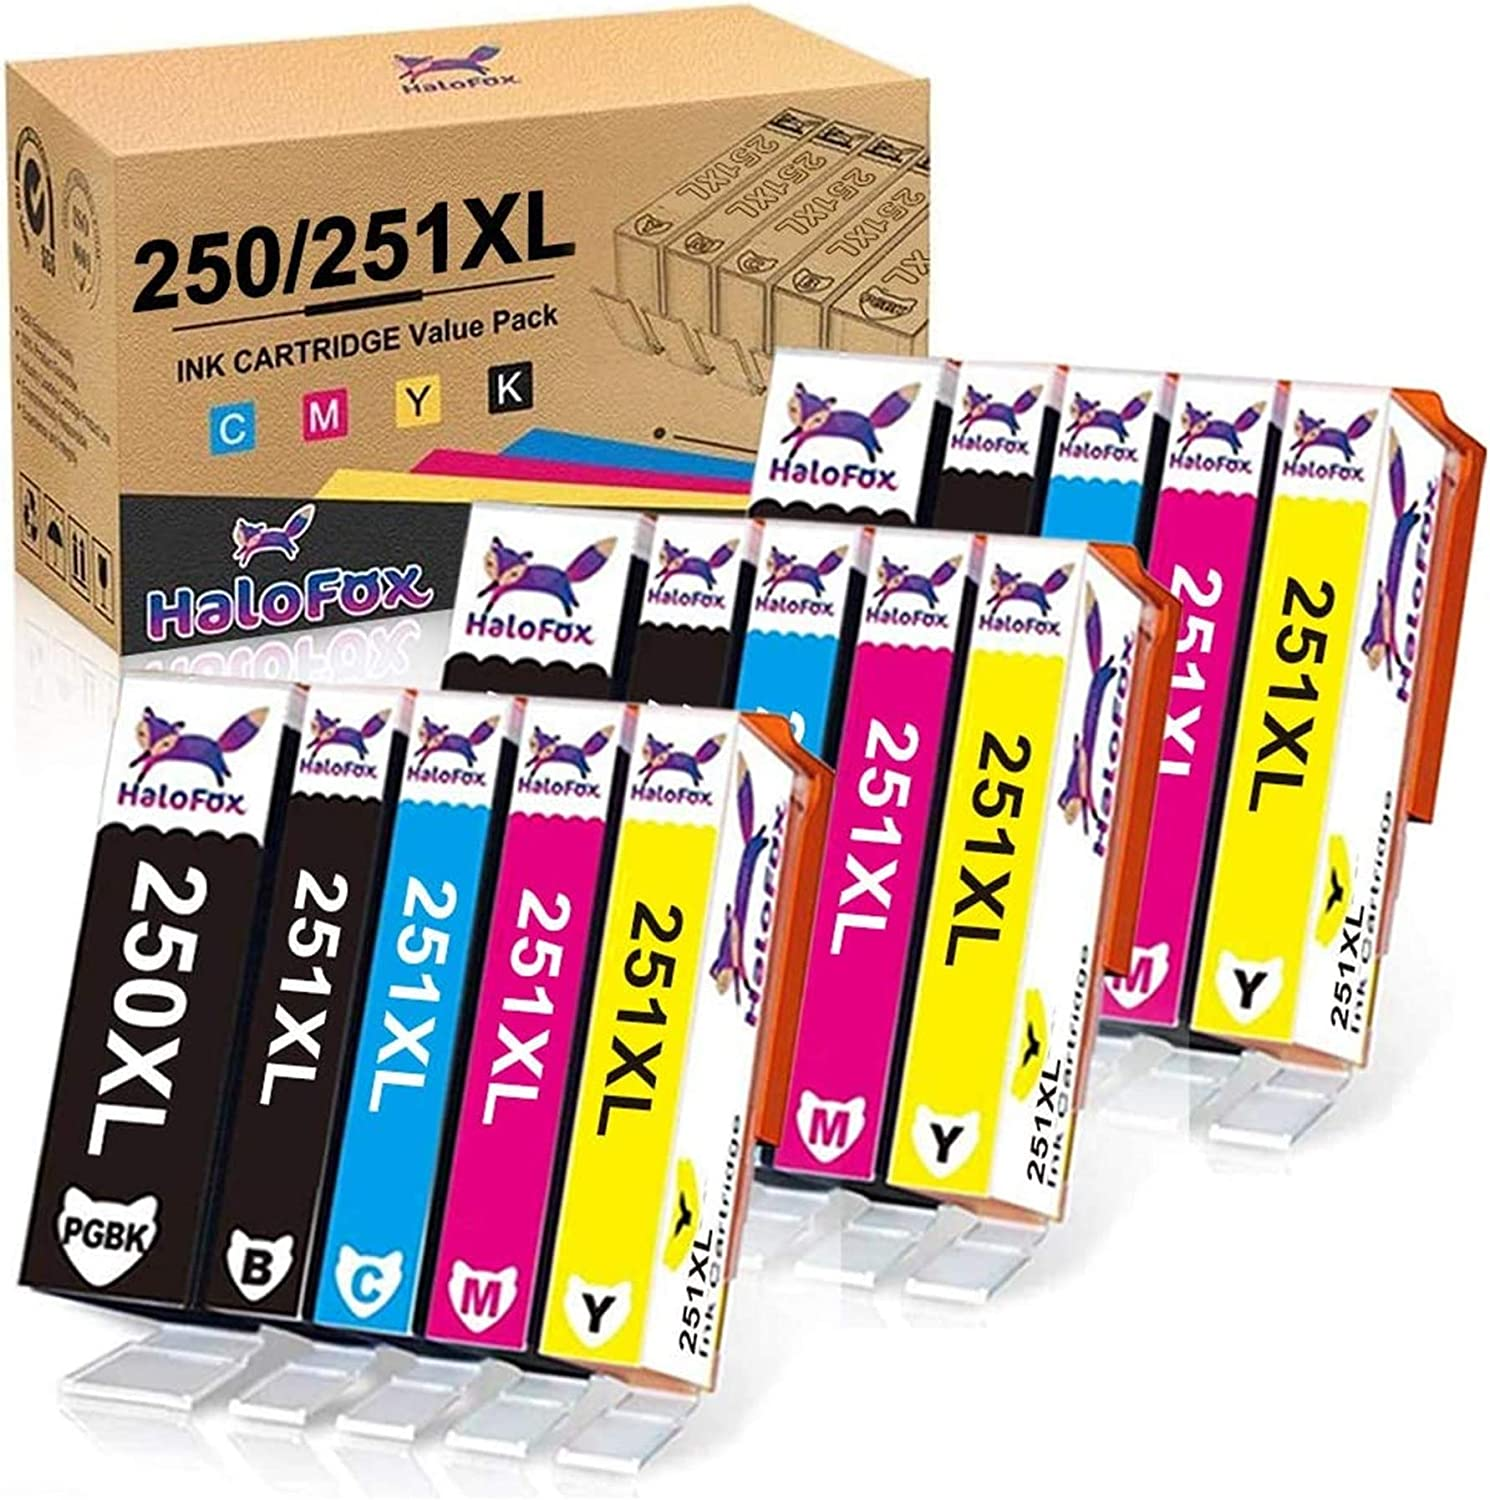 HaloFox Compatible Ink Cartridge Replacement for Canon PGI-250XL CLI-251XL 250 XL 251 XL to use with Canon PIXMA MX922 iX6820 IP7220 MG6320 MG5420 Printer (15 Packs)